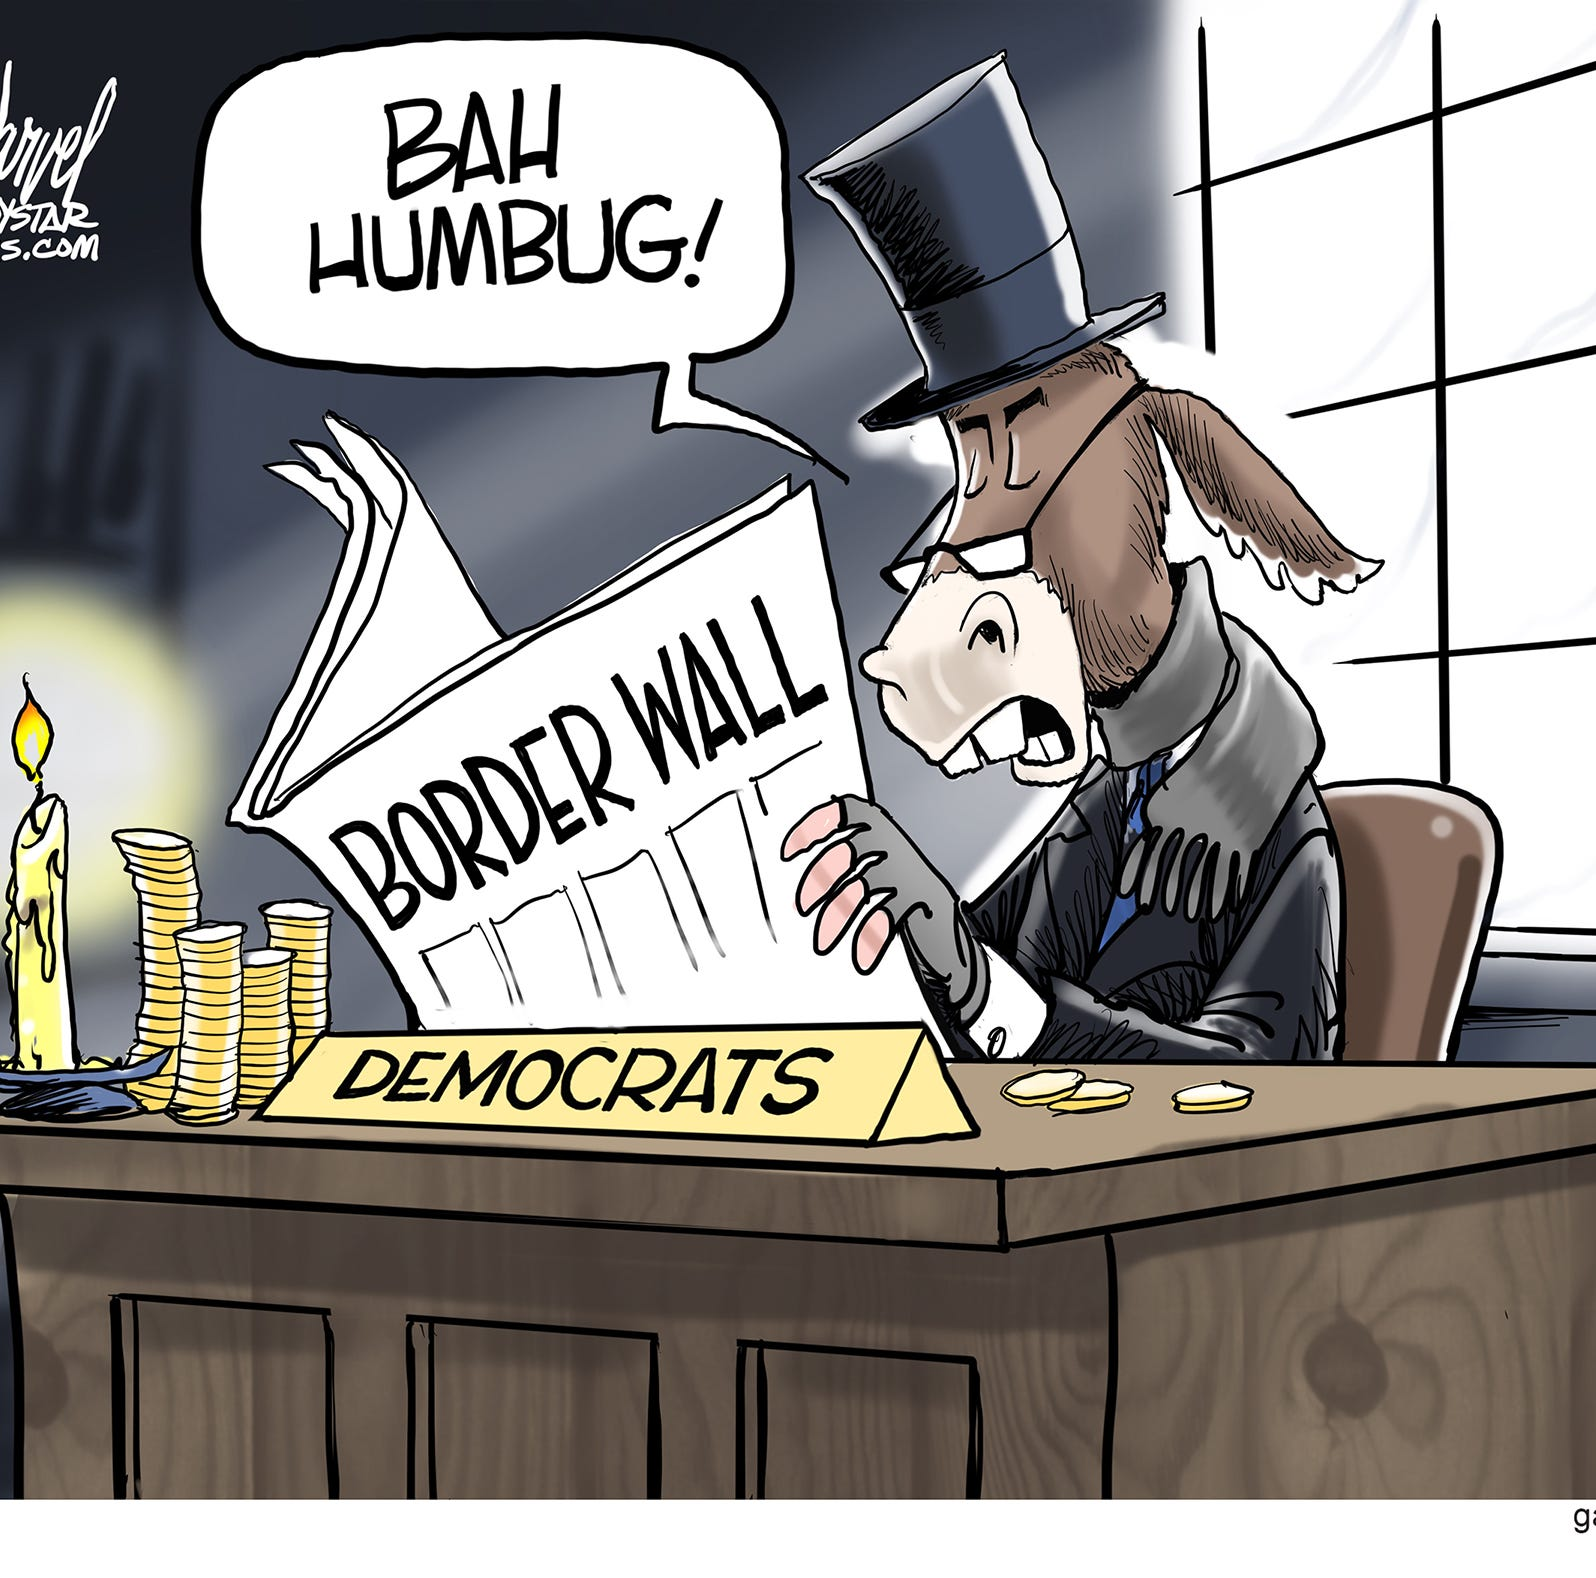 Cartoonist Gary Varvel: Democratic Scrooge